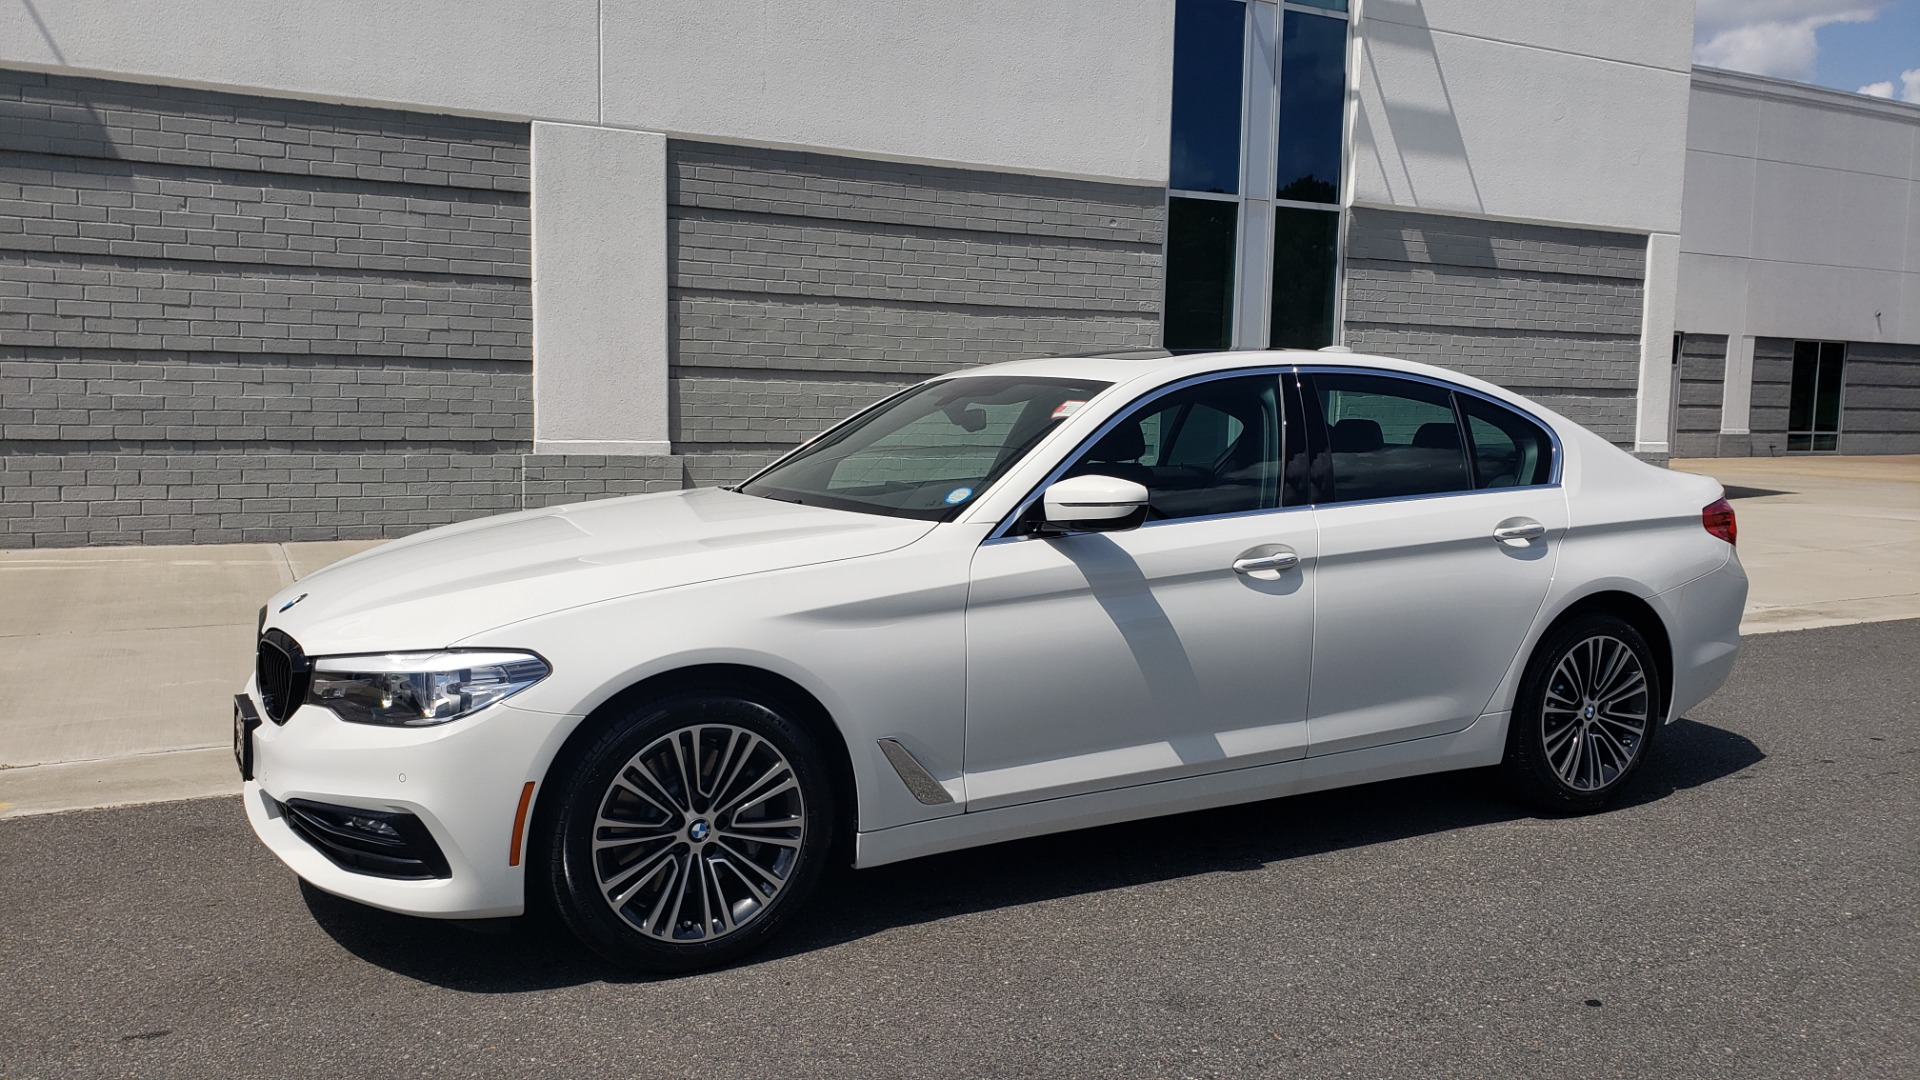 Used 2018 BMW 5 SERIES 530I XDRIVE PREMIUM / PARK ASST / NAV / SUNROOF / REARIEW for sale $37,795 at Formula Imports in Charlotte NC 28227 4